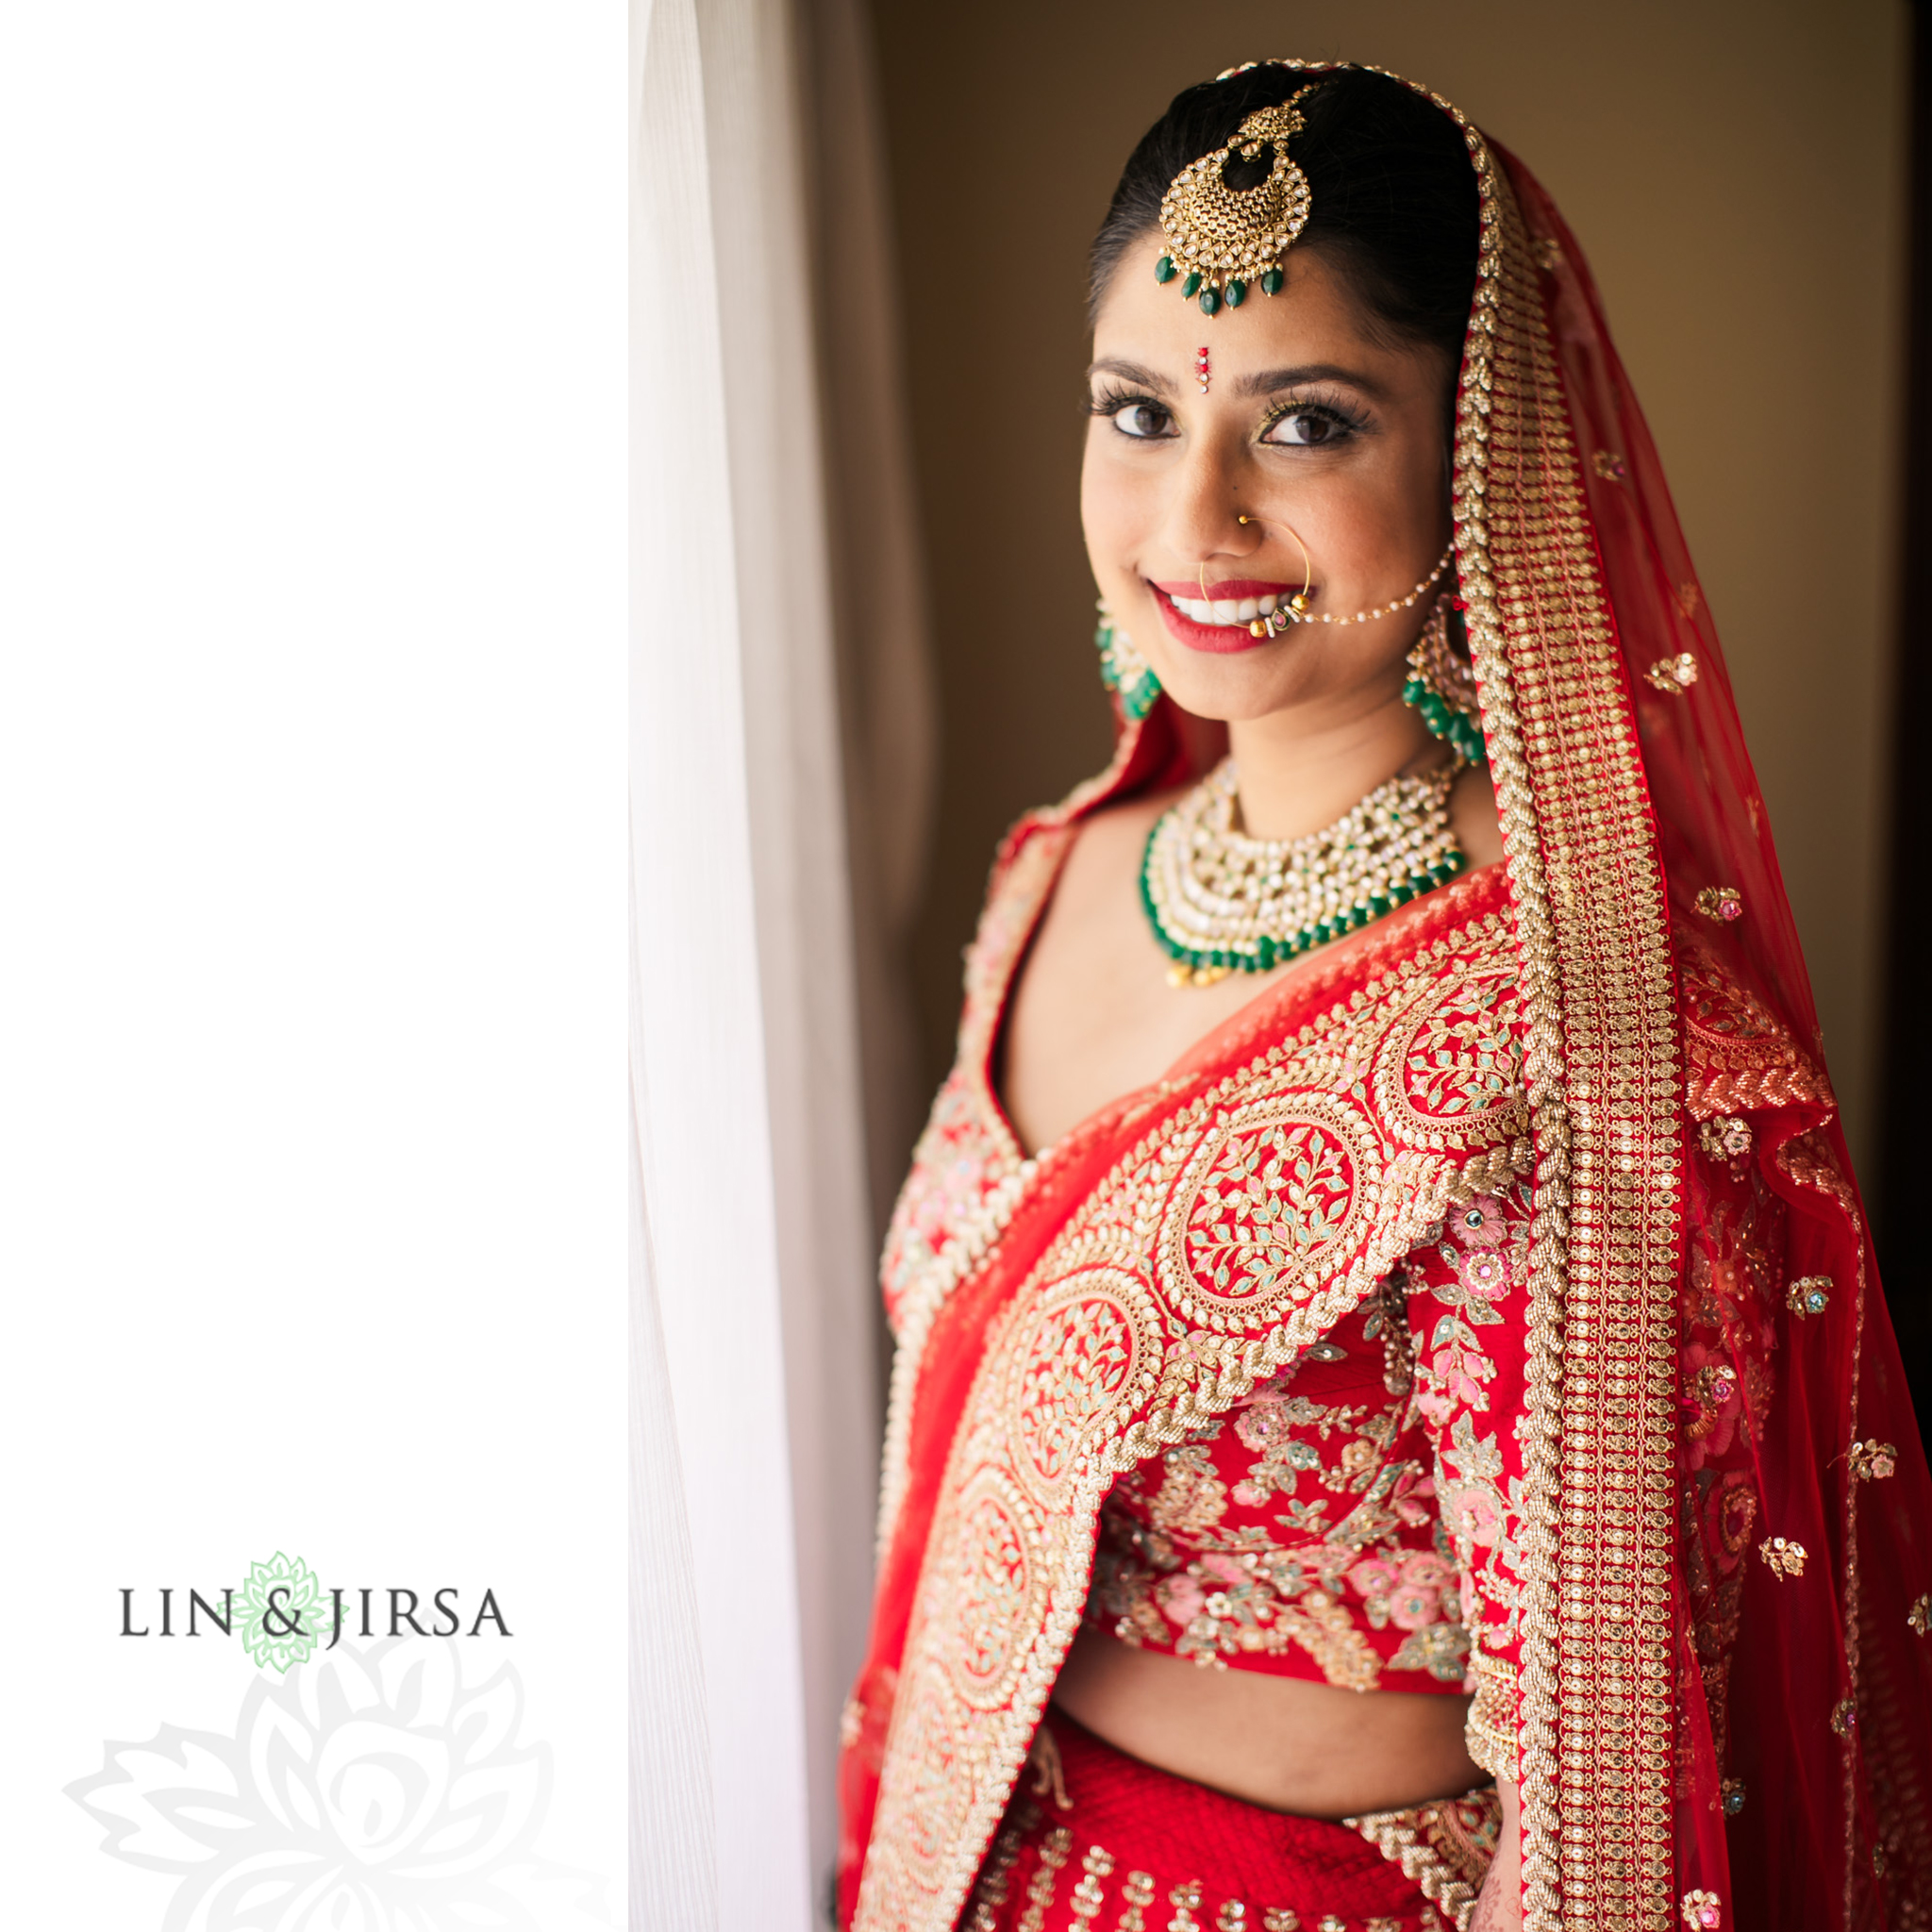 08 Turks and Caicos Travel Indian Wedding Photography